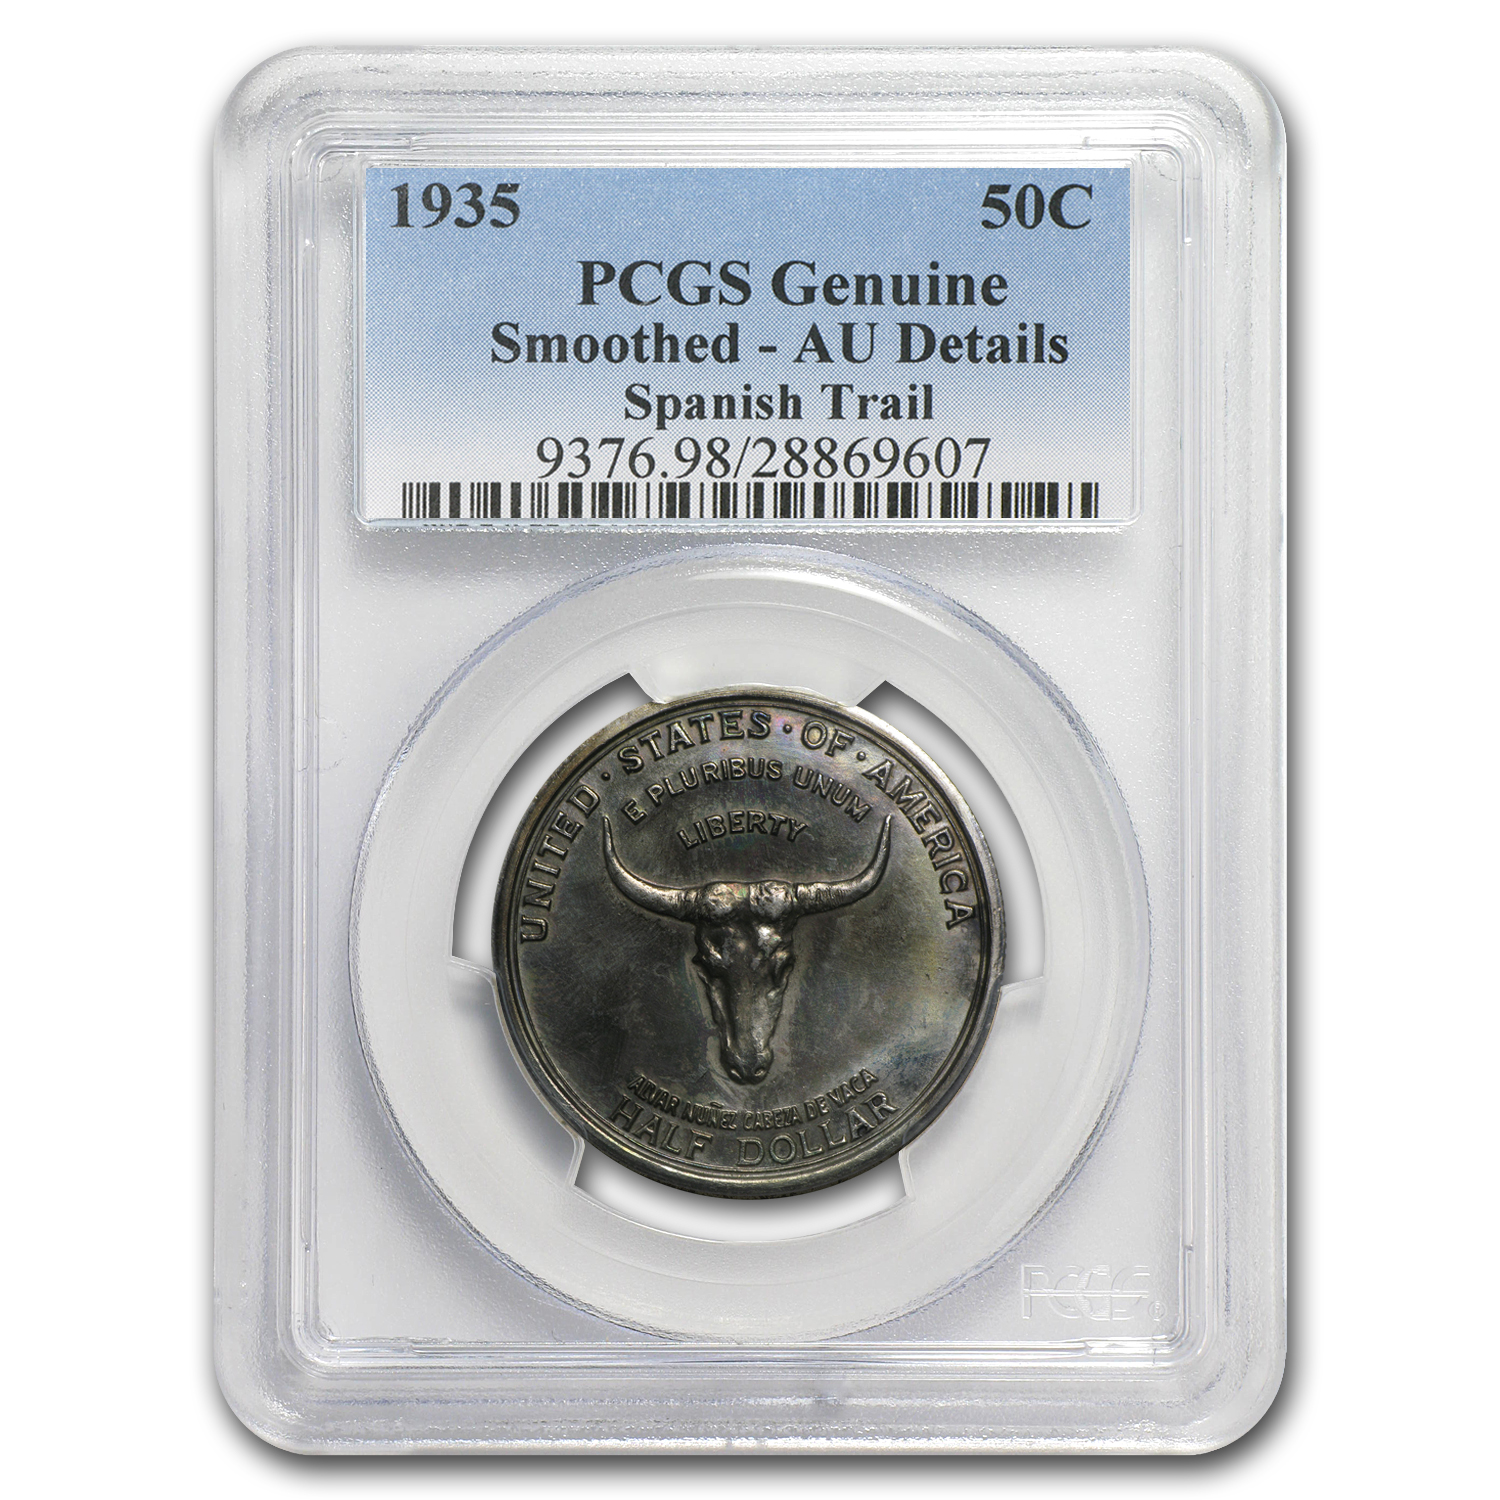 1935 Old Spanish Trail - AU Details PCGS